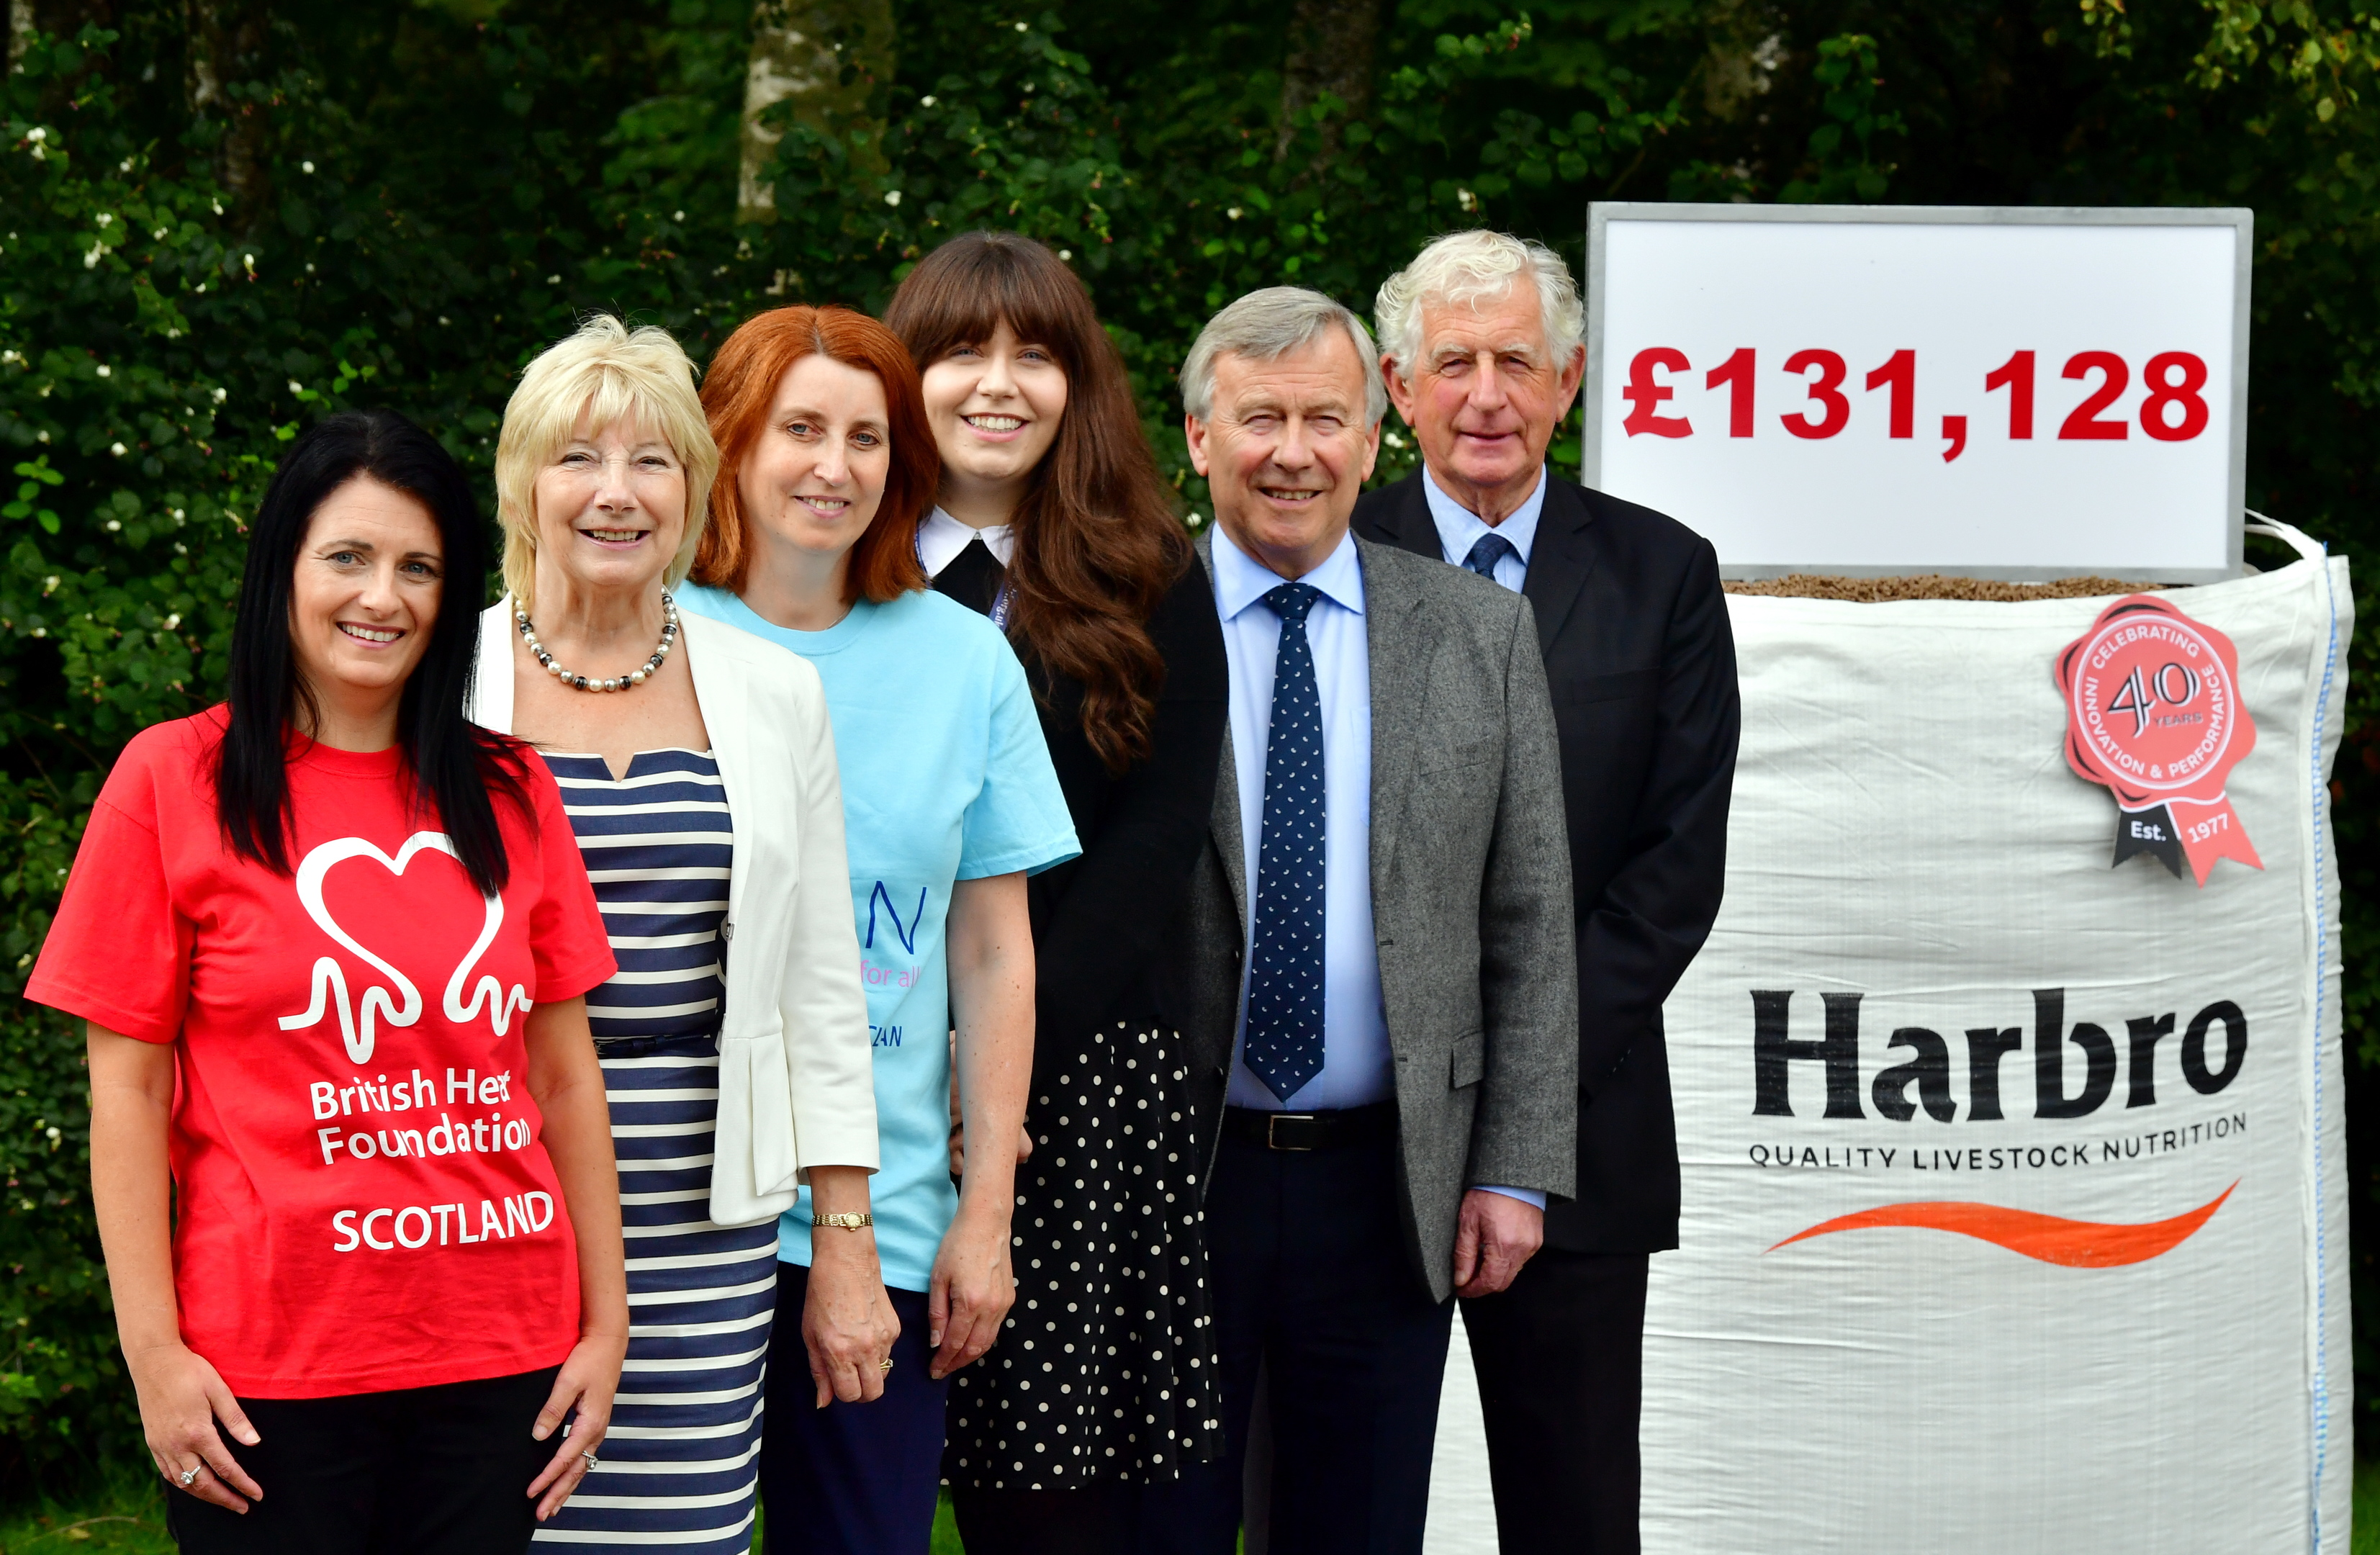 Pictured - L-R Margaret McWilliam British Heart Foundation), Sheena Dunsmore (Kidney Kids Scotland), Moureen Wilson (corr)(CLAN), Claire Henderson (JDRF), Graham Baxter MD and Peter Kenyon chairman. Picture by Kami Thomson